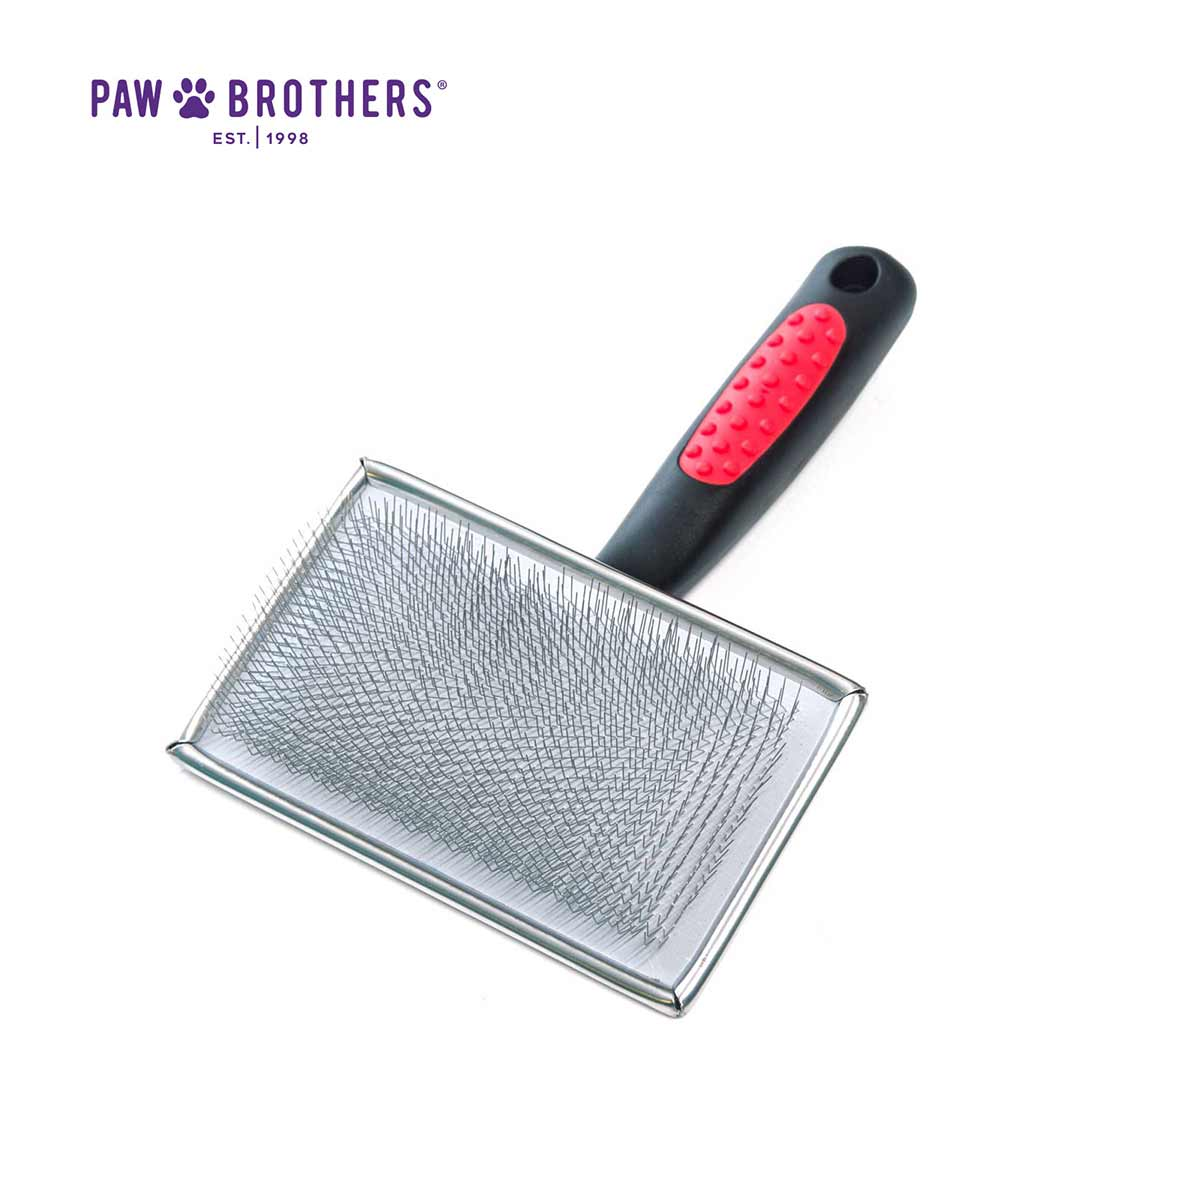 Paw Brothers X-Large Flat Slicker Brush - 4.5 inches by 2.75 inches